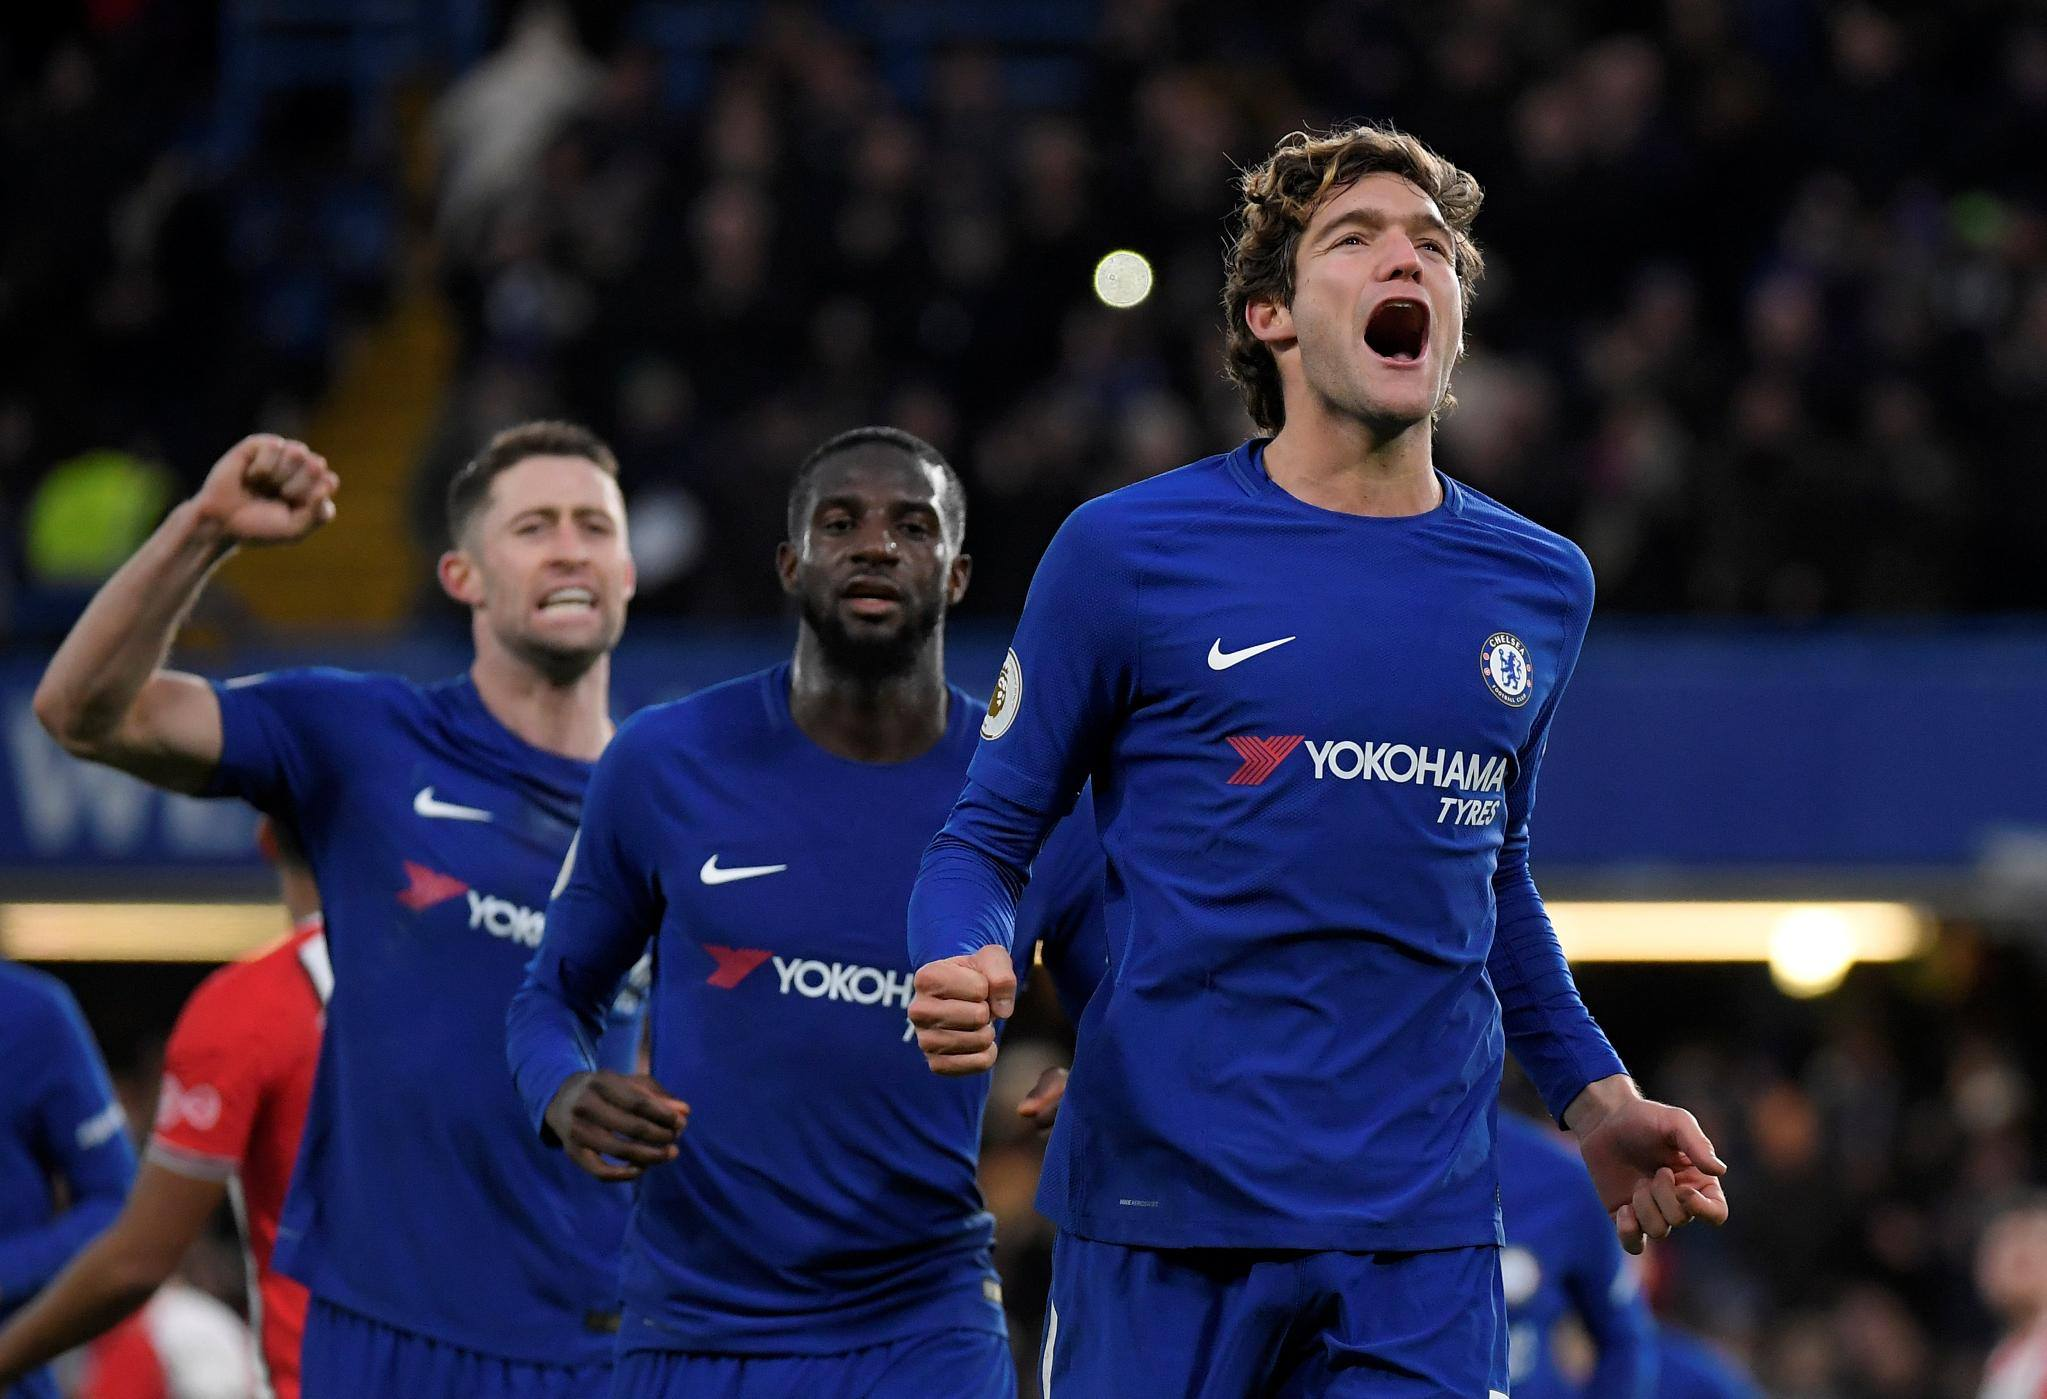 Inter Milan CEO Beppe Marotta has confirmed that they will not be signing Chelsea defender Marcos Alonso this summer.